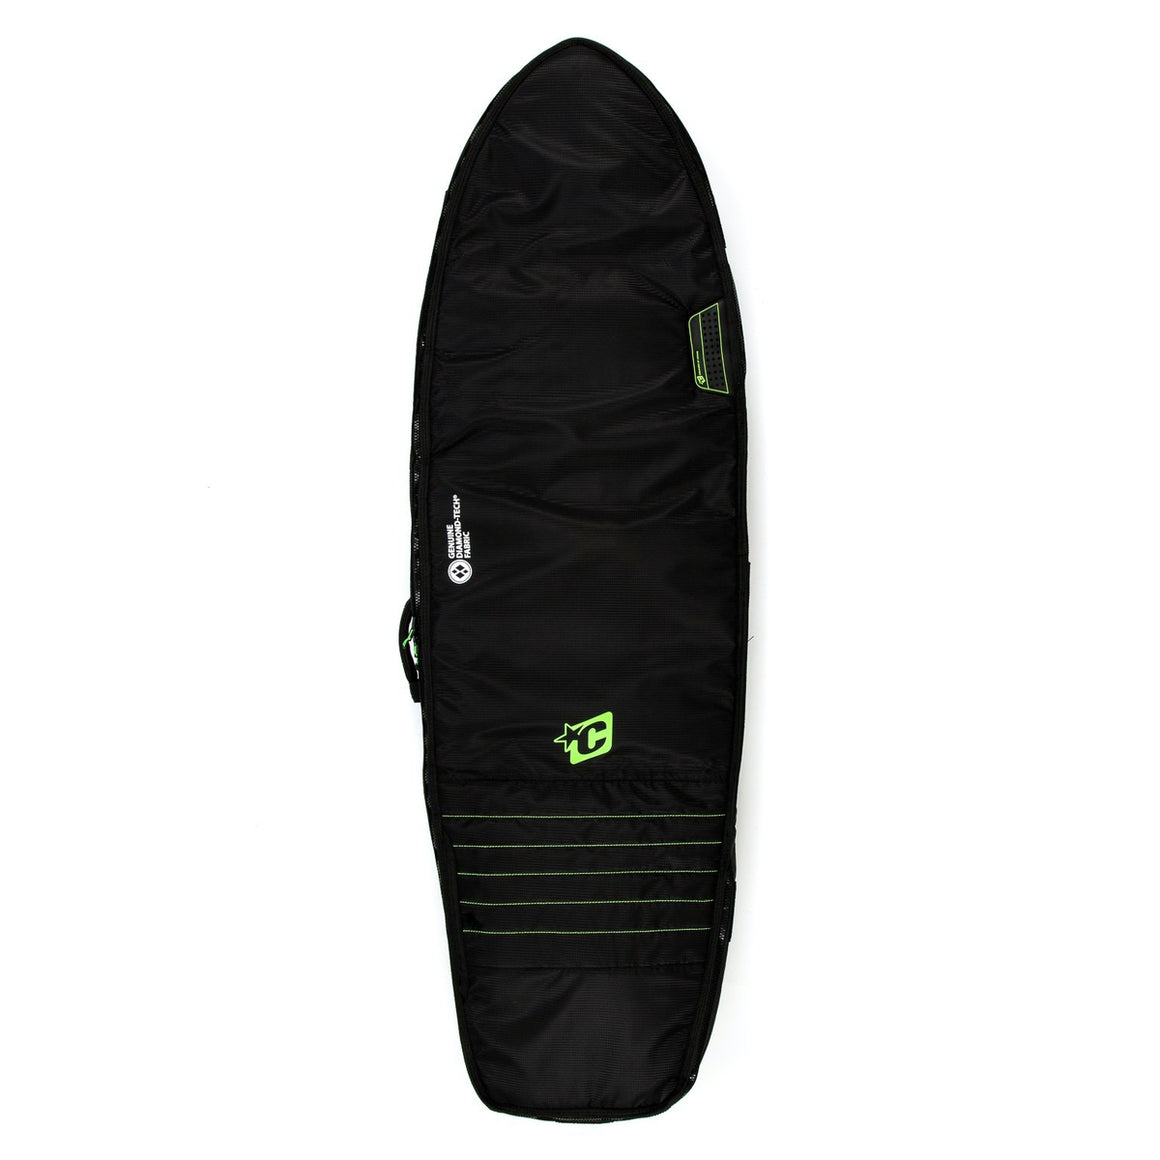 Surfboard / Bodyboard & SUP board bags - Surf and SUP